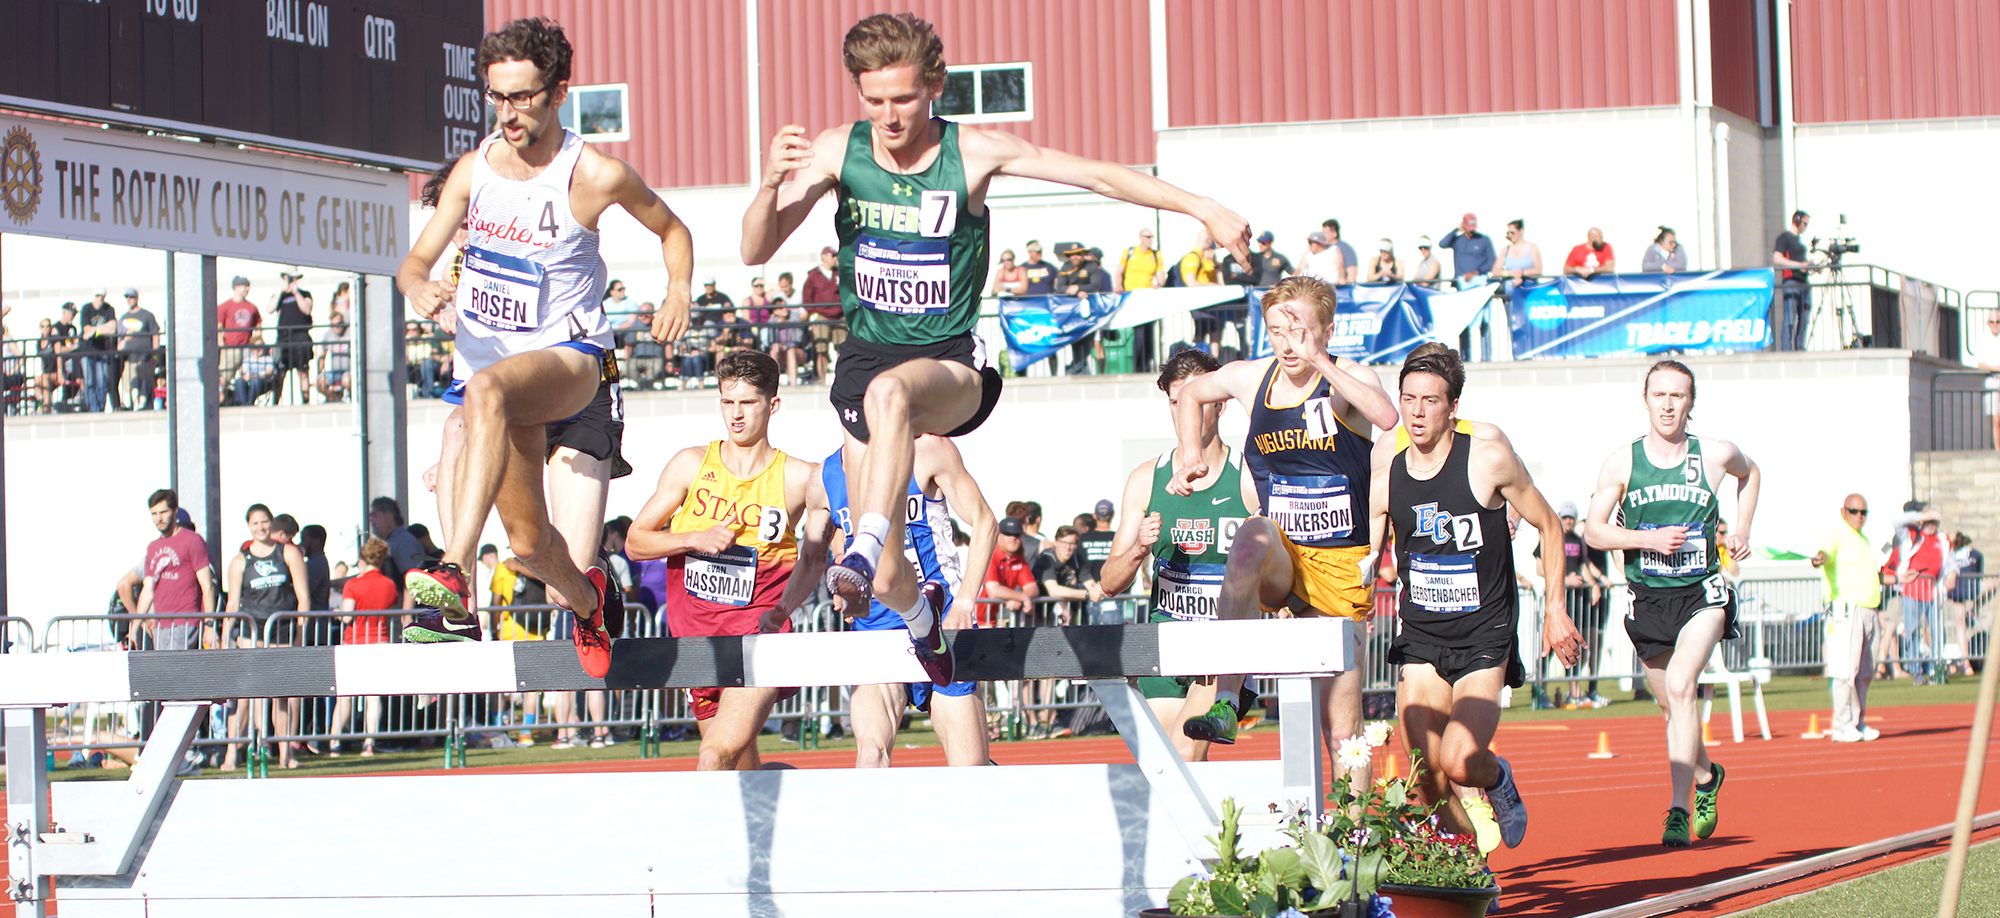 Patrick Watson Qualifies for NCAA Final in 3000-Meter Steeplechase